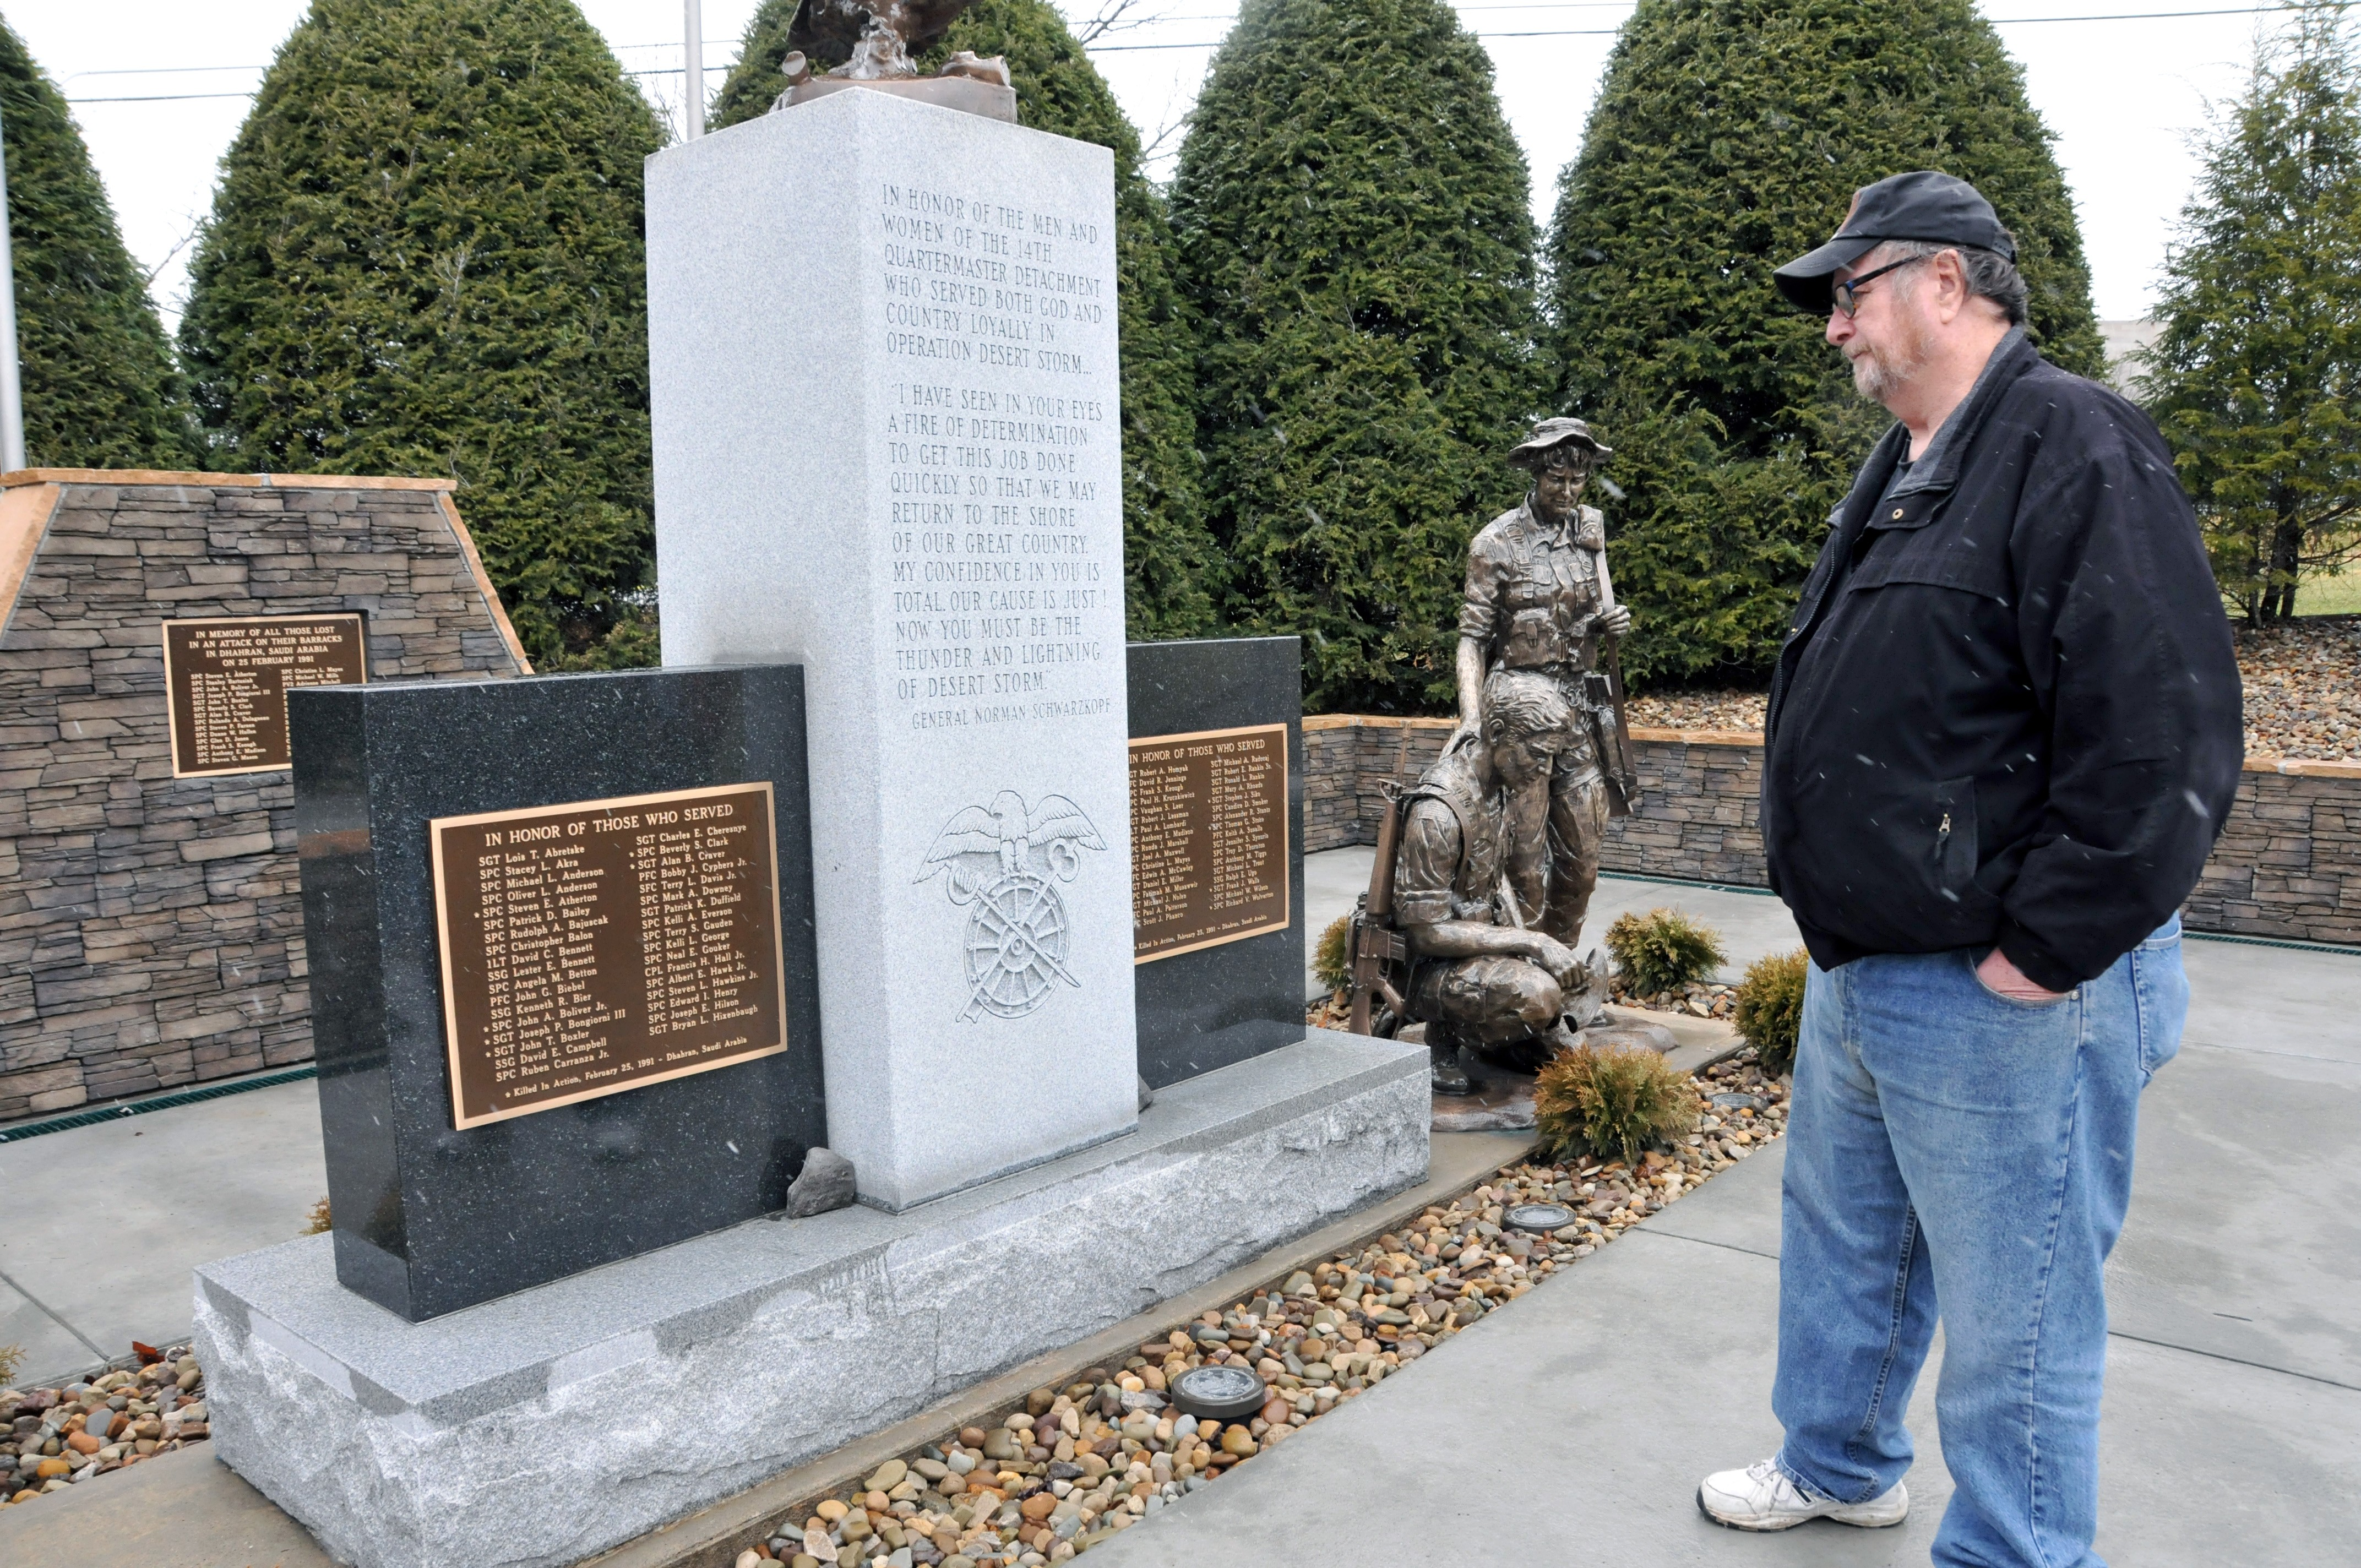 vietnam vet honors fallen reserve iers from gulf war vietnam vet honors fallen reserve iers from gulf war